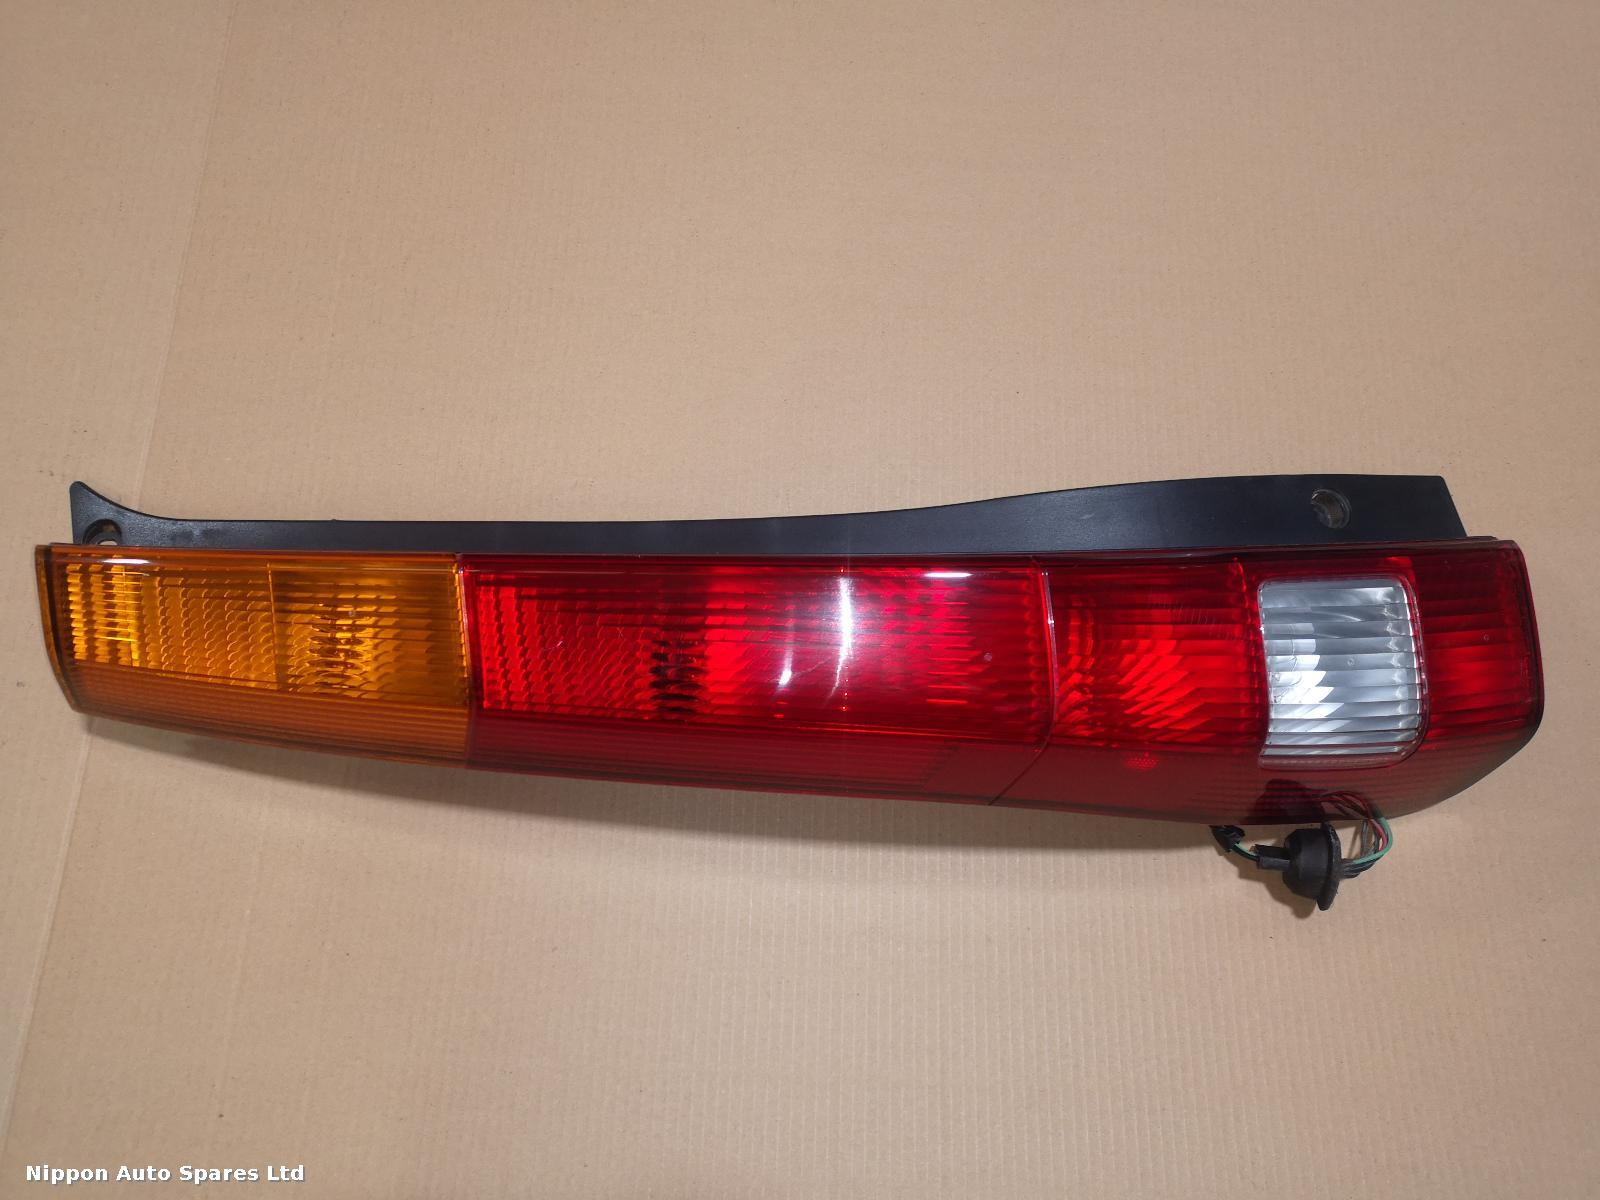 Honda CRV L Taillight PRE FACE LIFT ORANGE TYPE: 55893